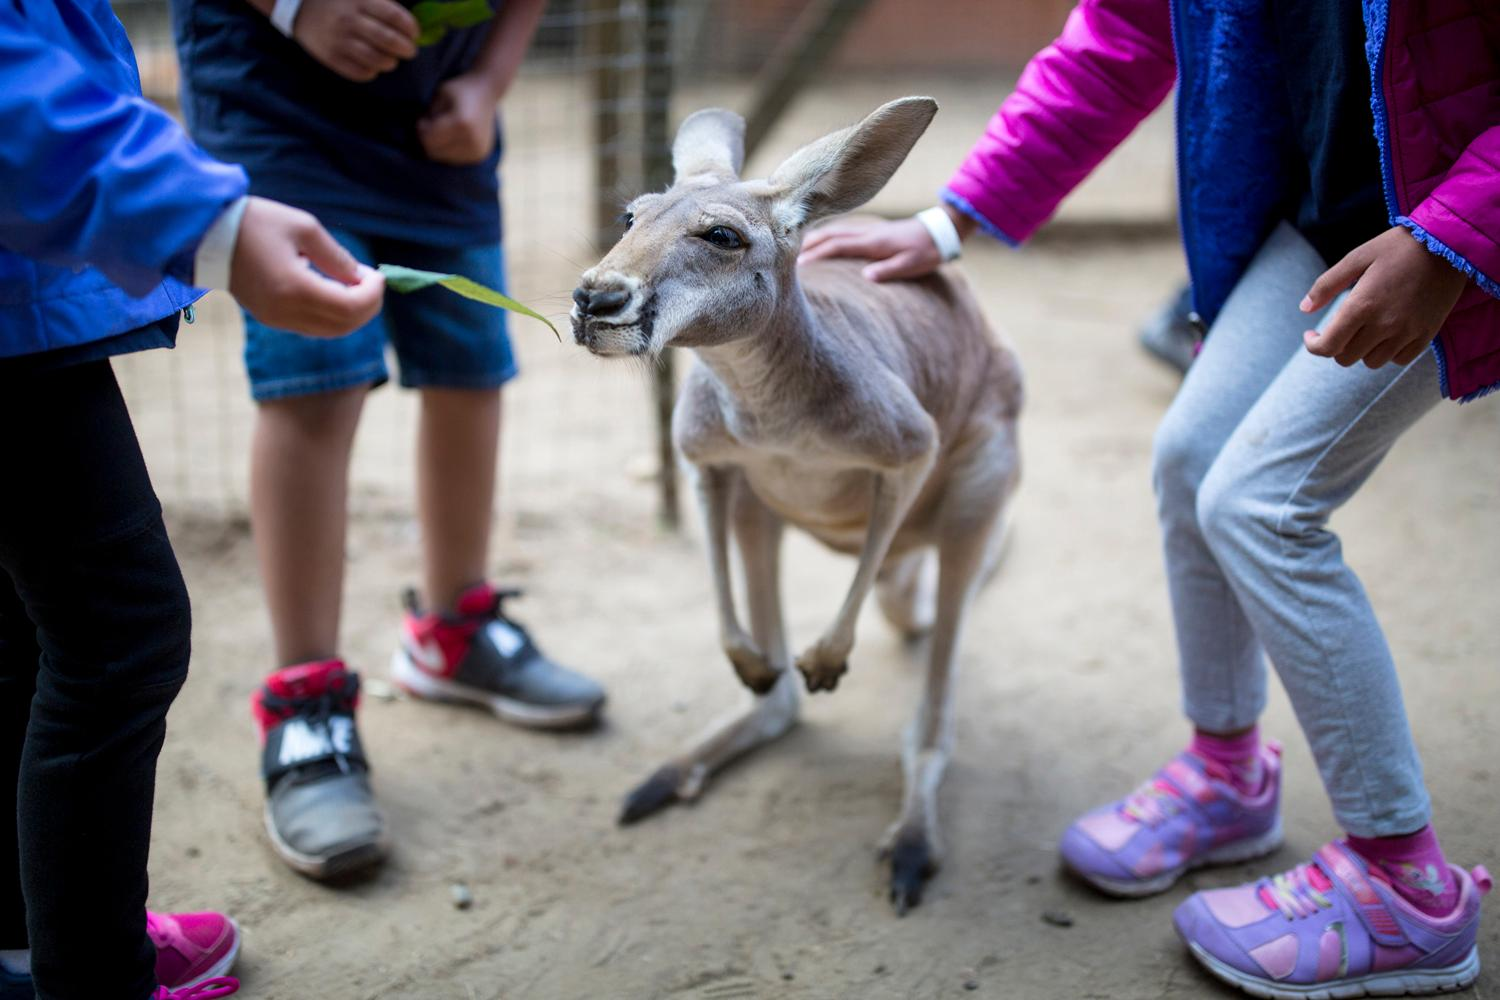 Outback Kangaroo in Arlington provides kangaroo and exotic animal tours that allows guest to interact with all the different animals. In addition to kangaroos, the farm houses everything from alpacas and flying squirrels to peacocks and wallaroos. (Sy Bean / Seattle Refined)